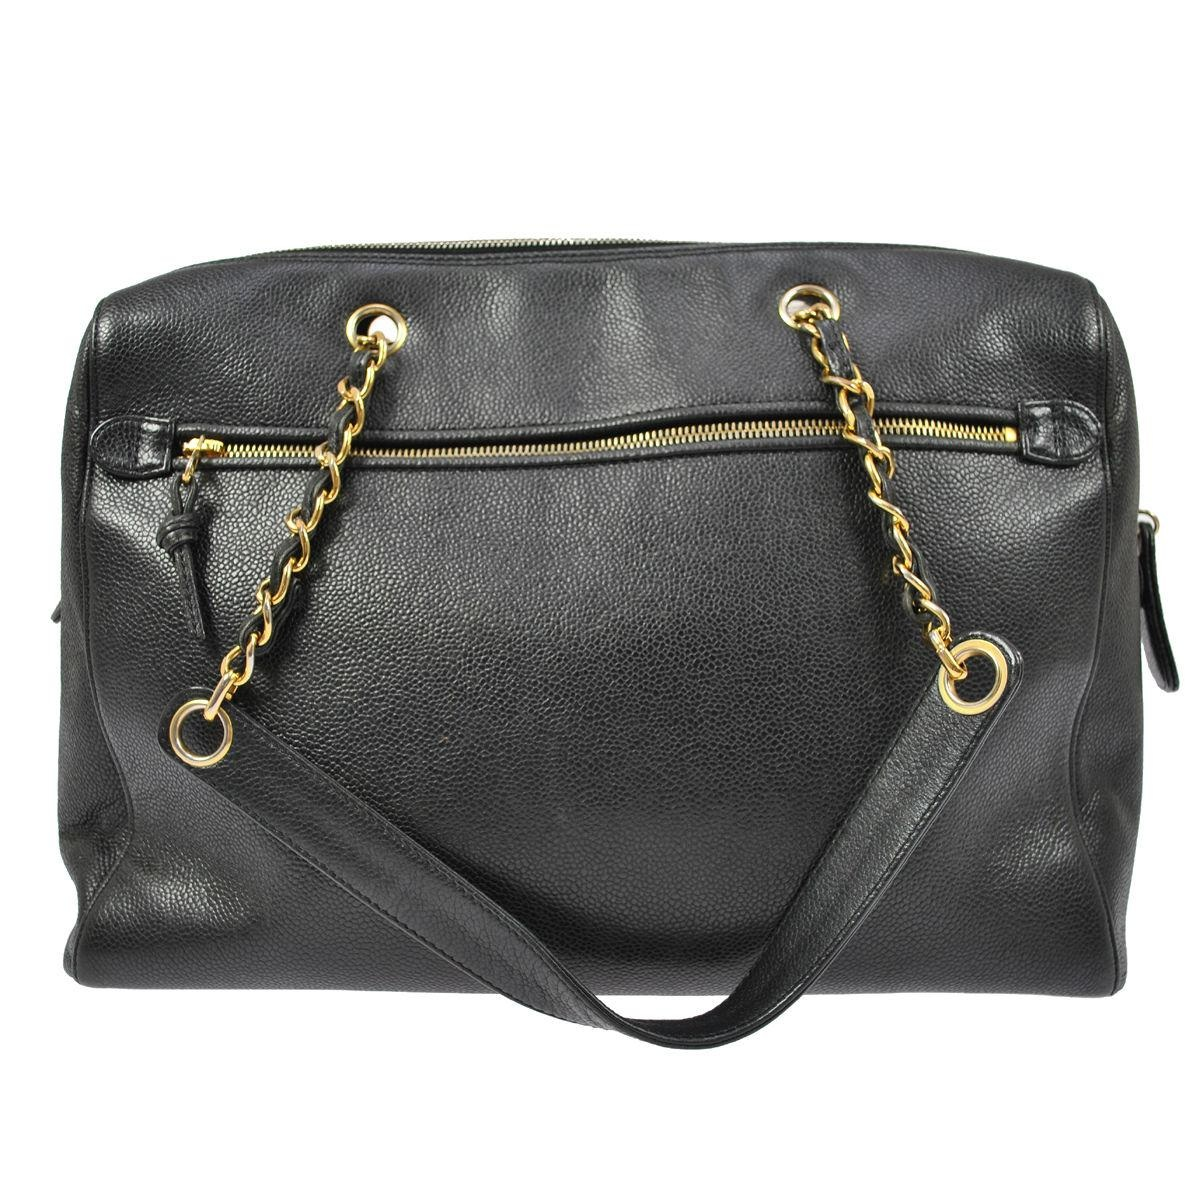 b5fbcdbe10e068 Chanel Tote Gold Chain | Stanford Center for Opportunity Policy in ...